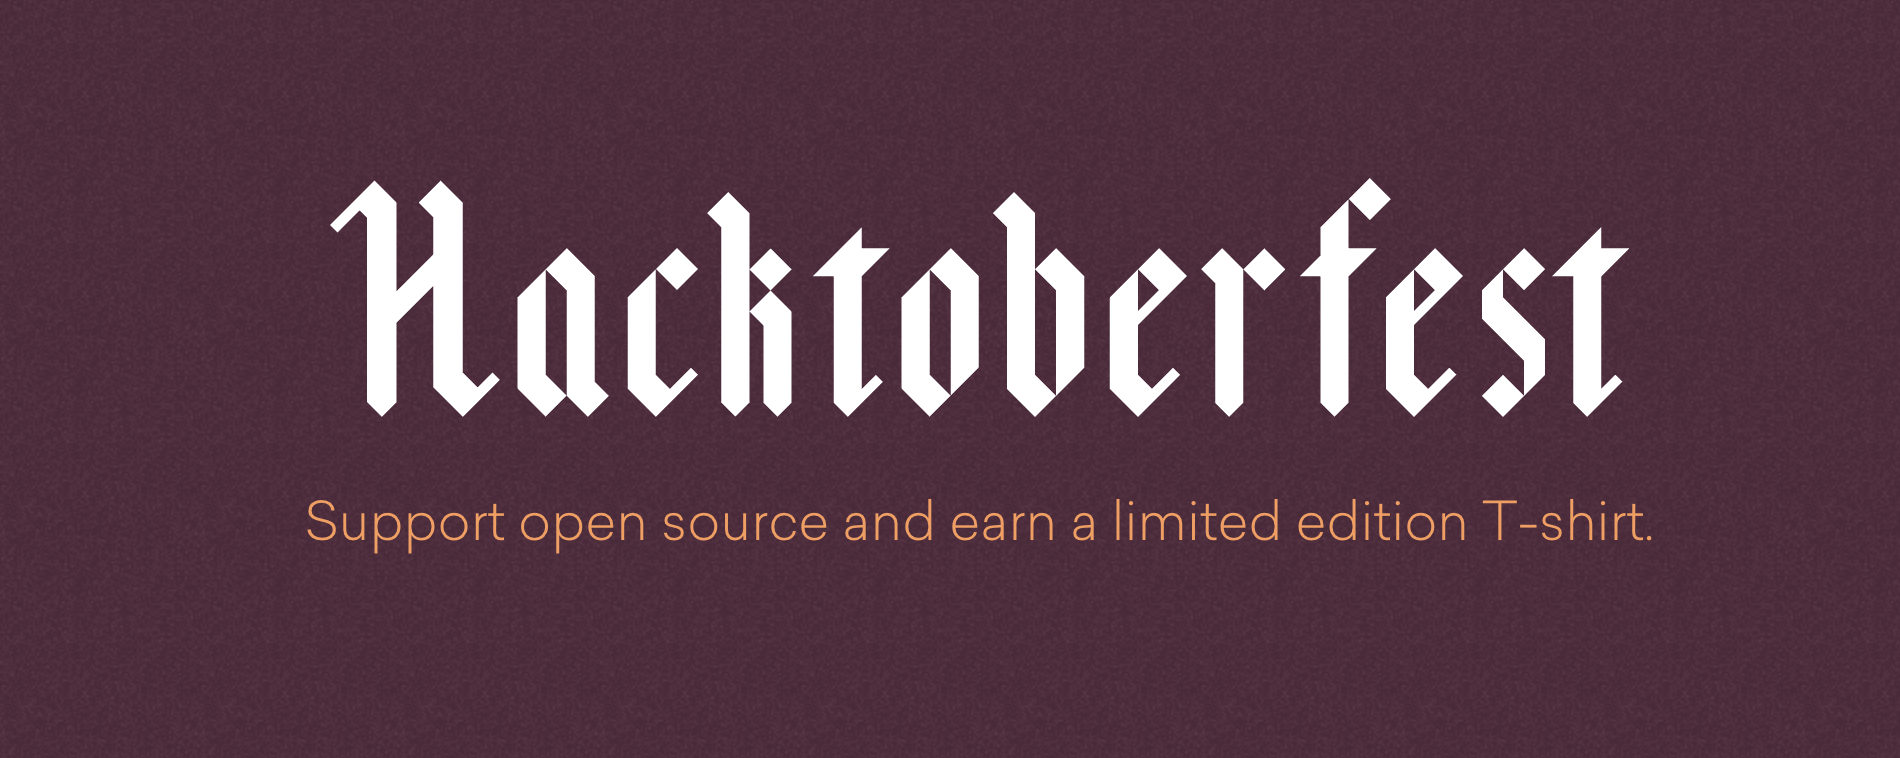 Hacktoberfest from DigitalOcean